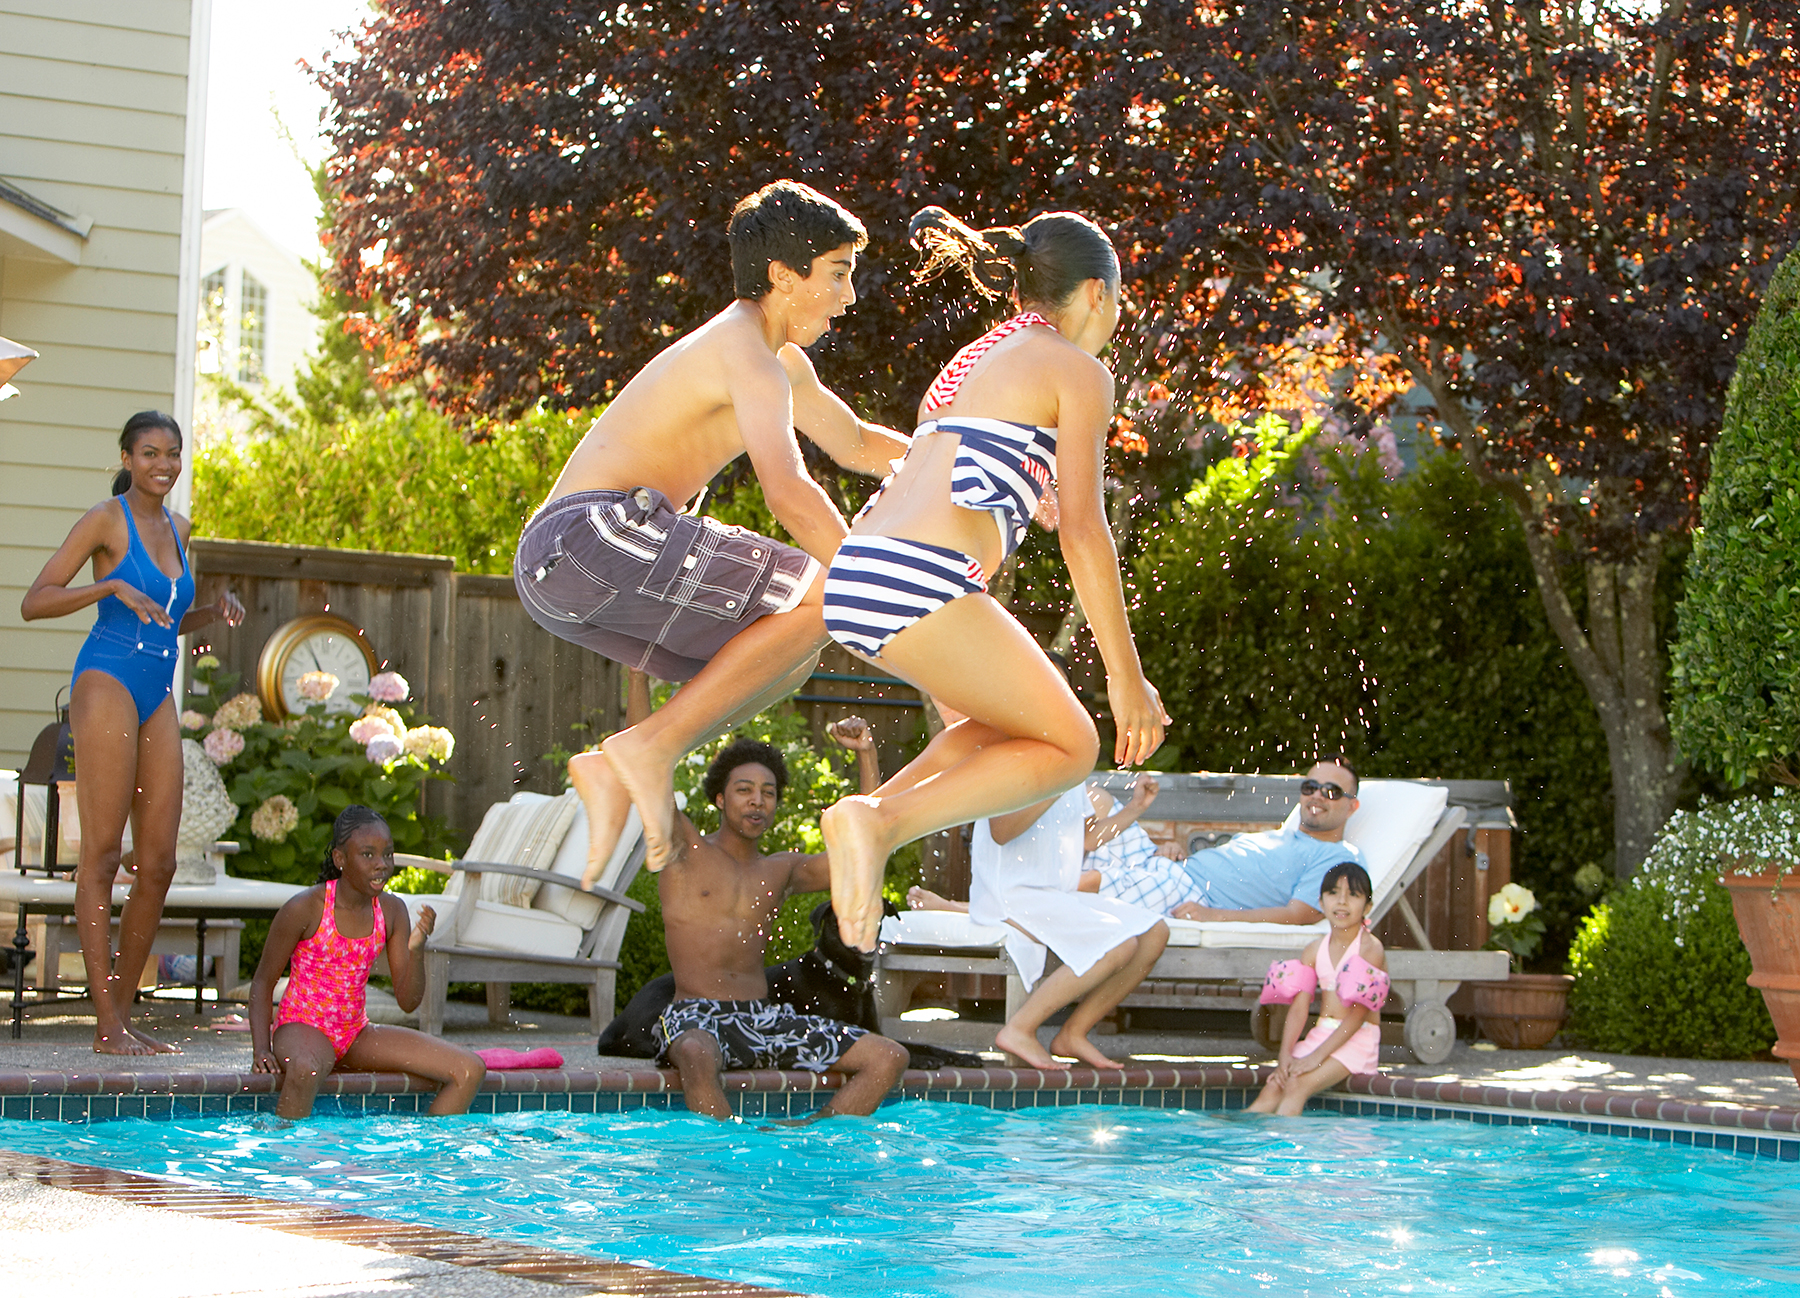 kids jumping into pool lifestyle art director